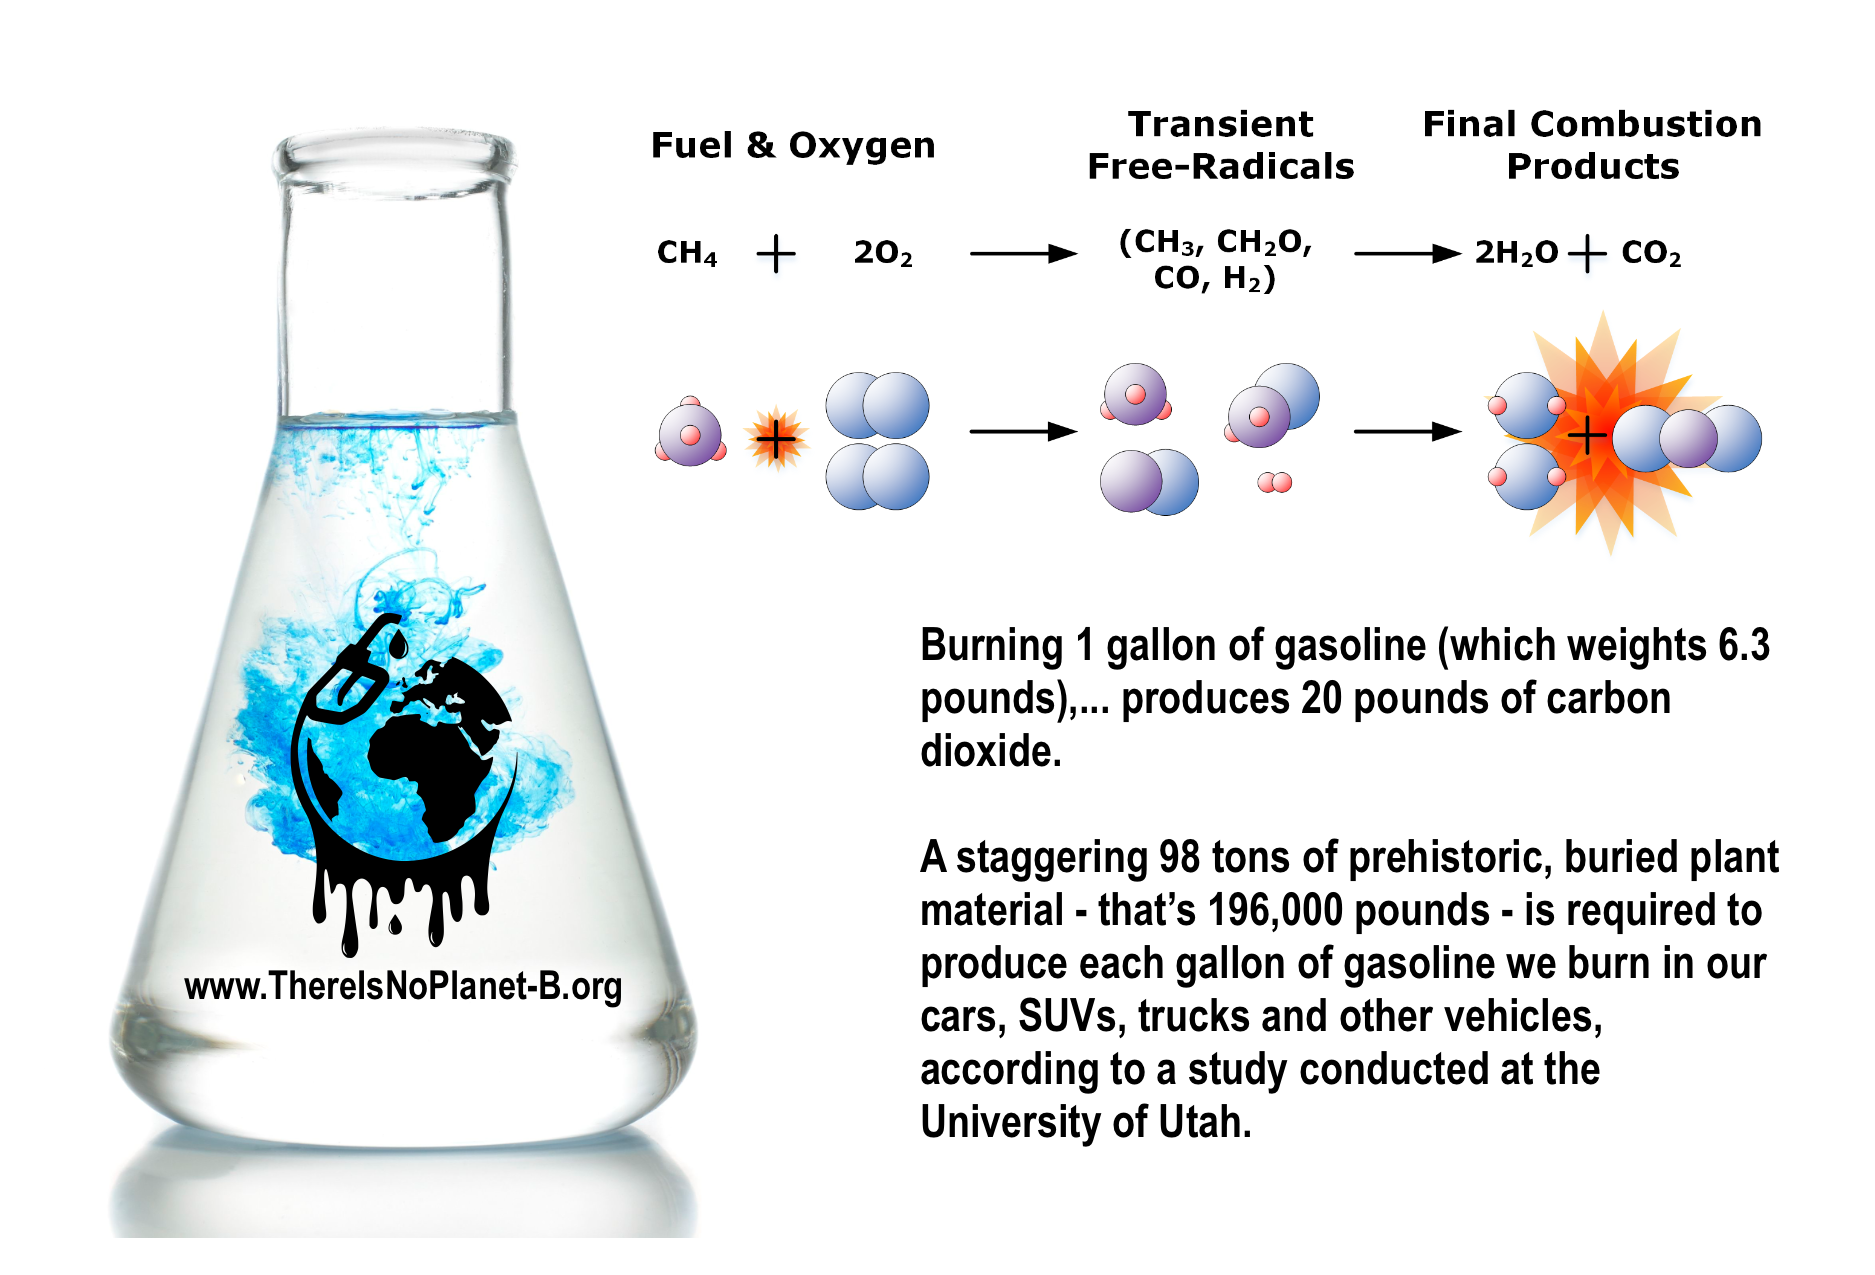 4x6-PC-01-combustion-reaction-CO2-diffus